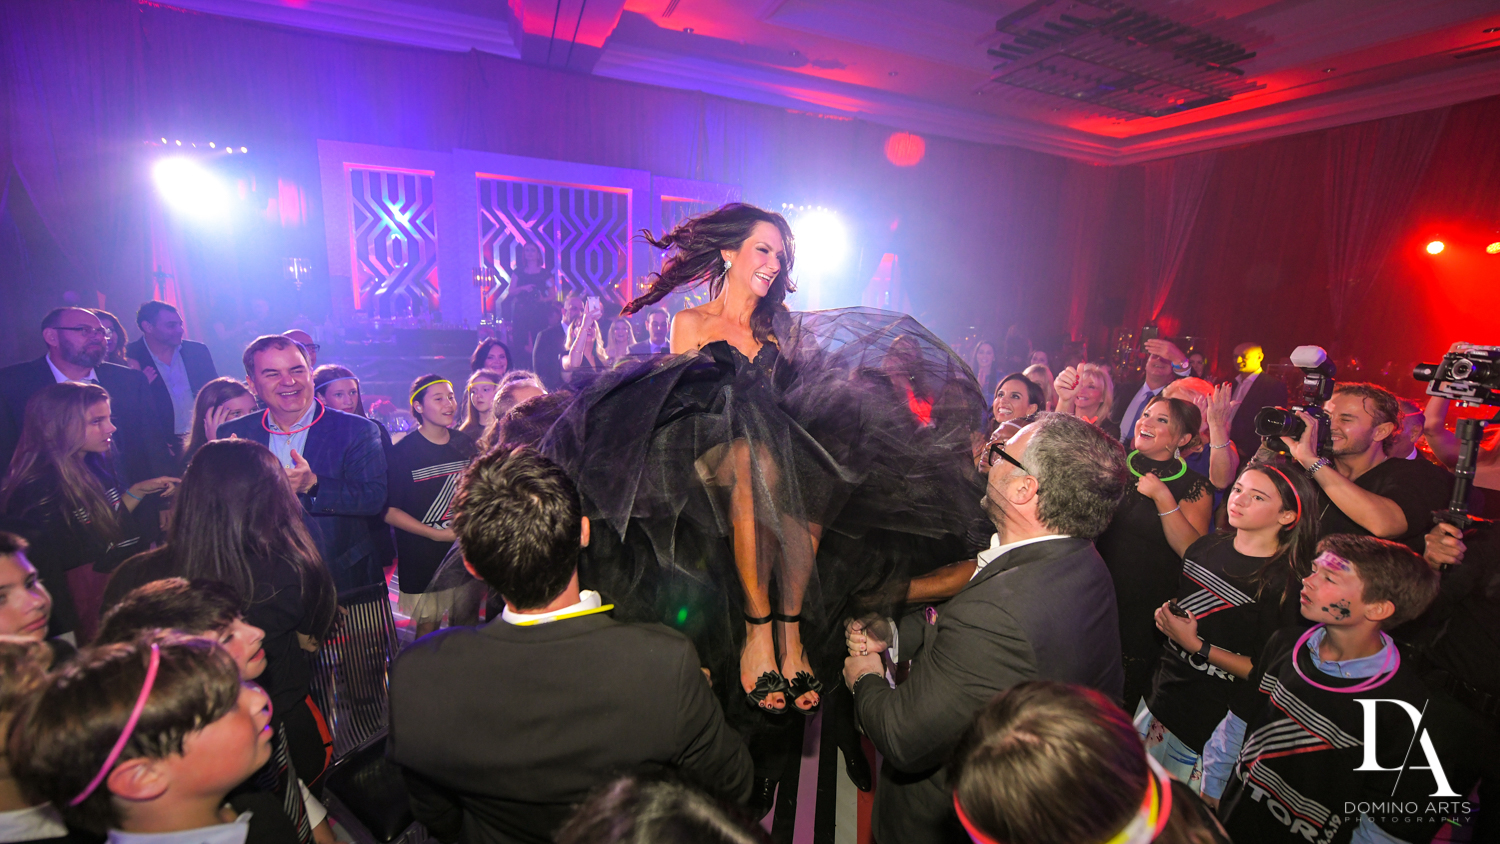 hora at Luxury Celebrity Bat Mitzvah at Four Seasons Hotel Miami by Domino Arts Photography